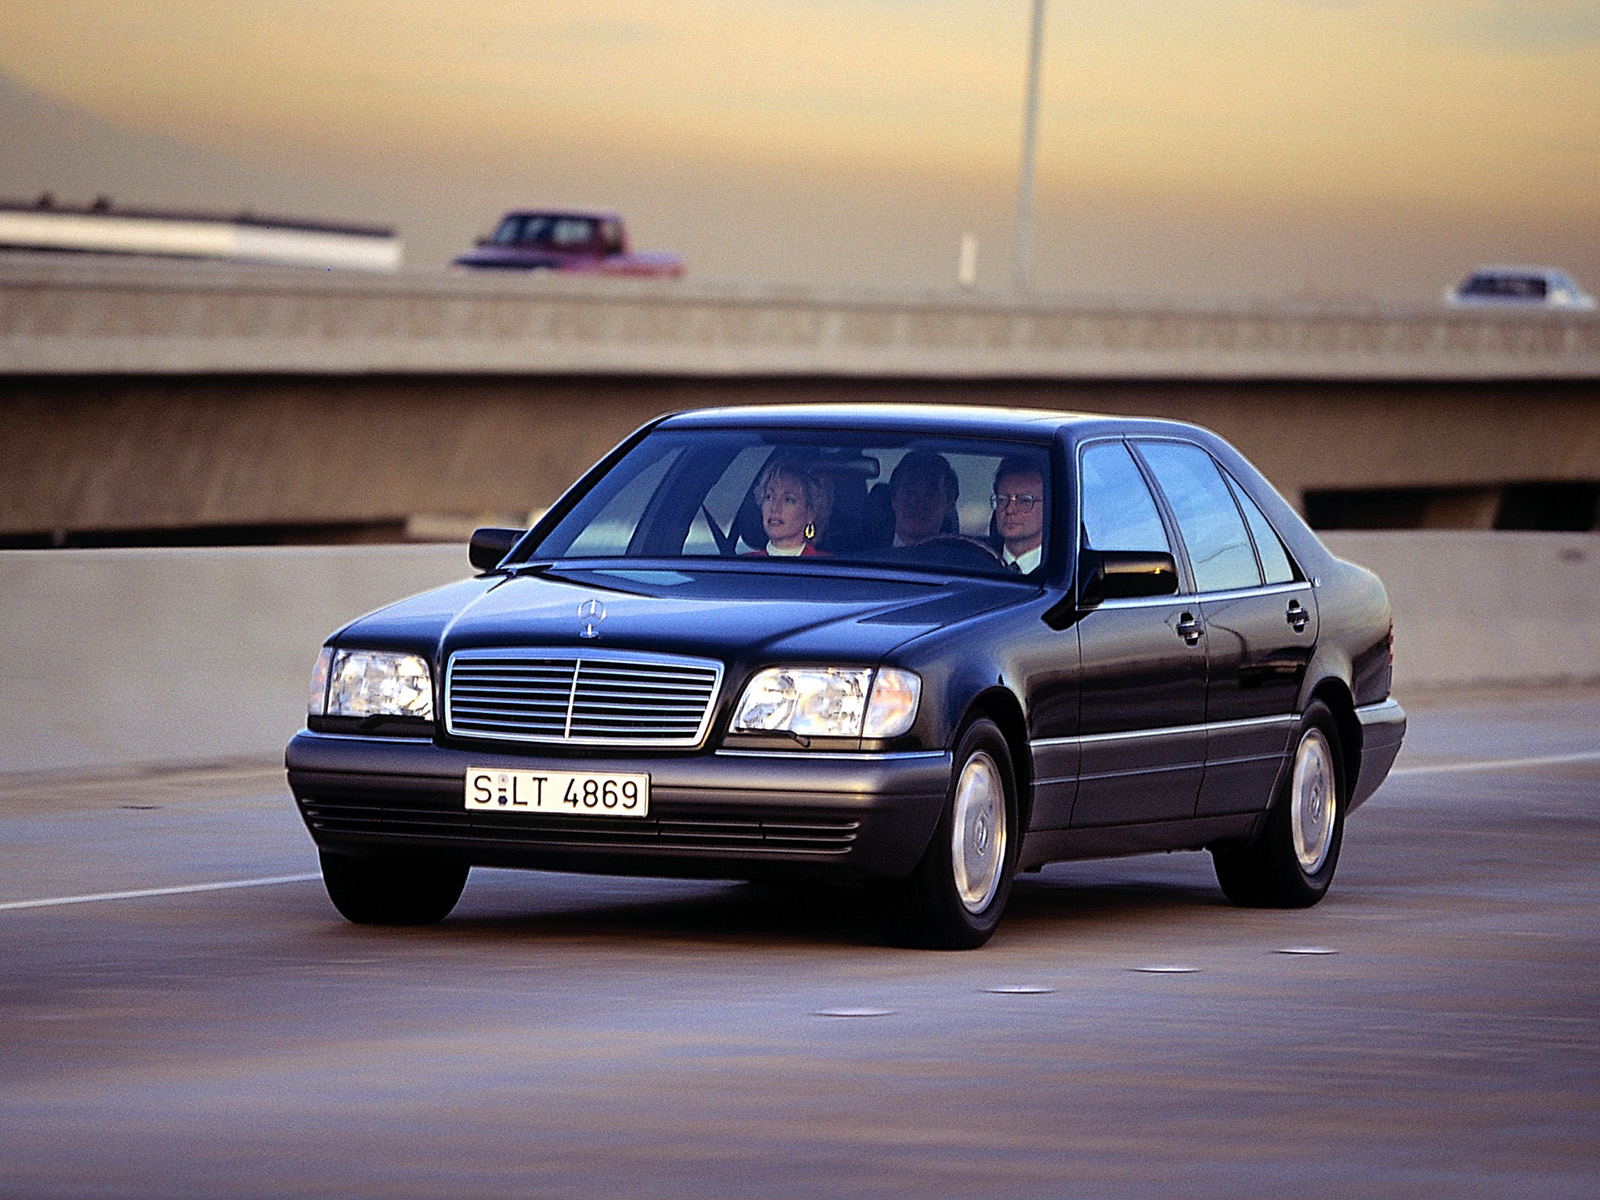 MERCEDES BENZ BLOG: Mercedes-Benz W140 S-Klasse(for more please